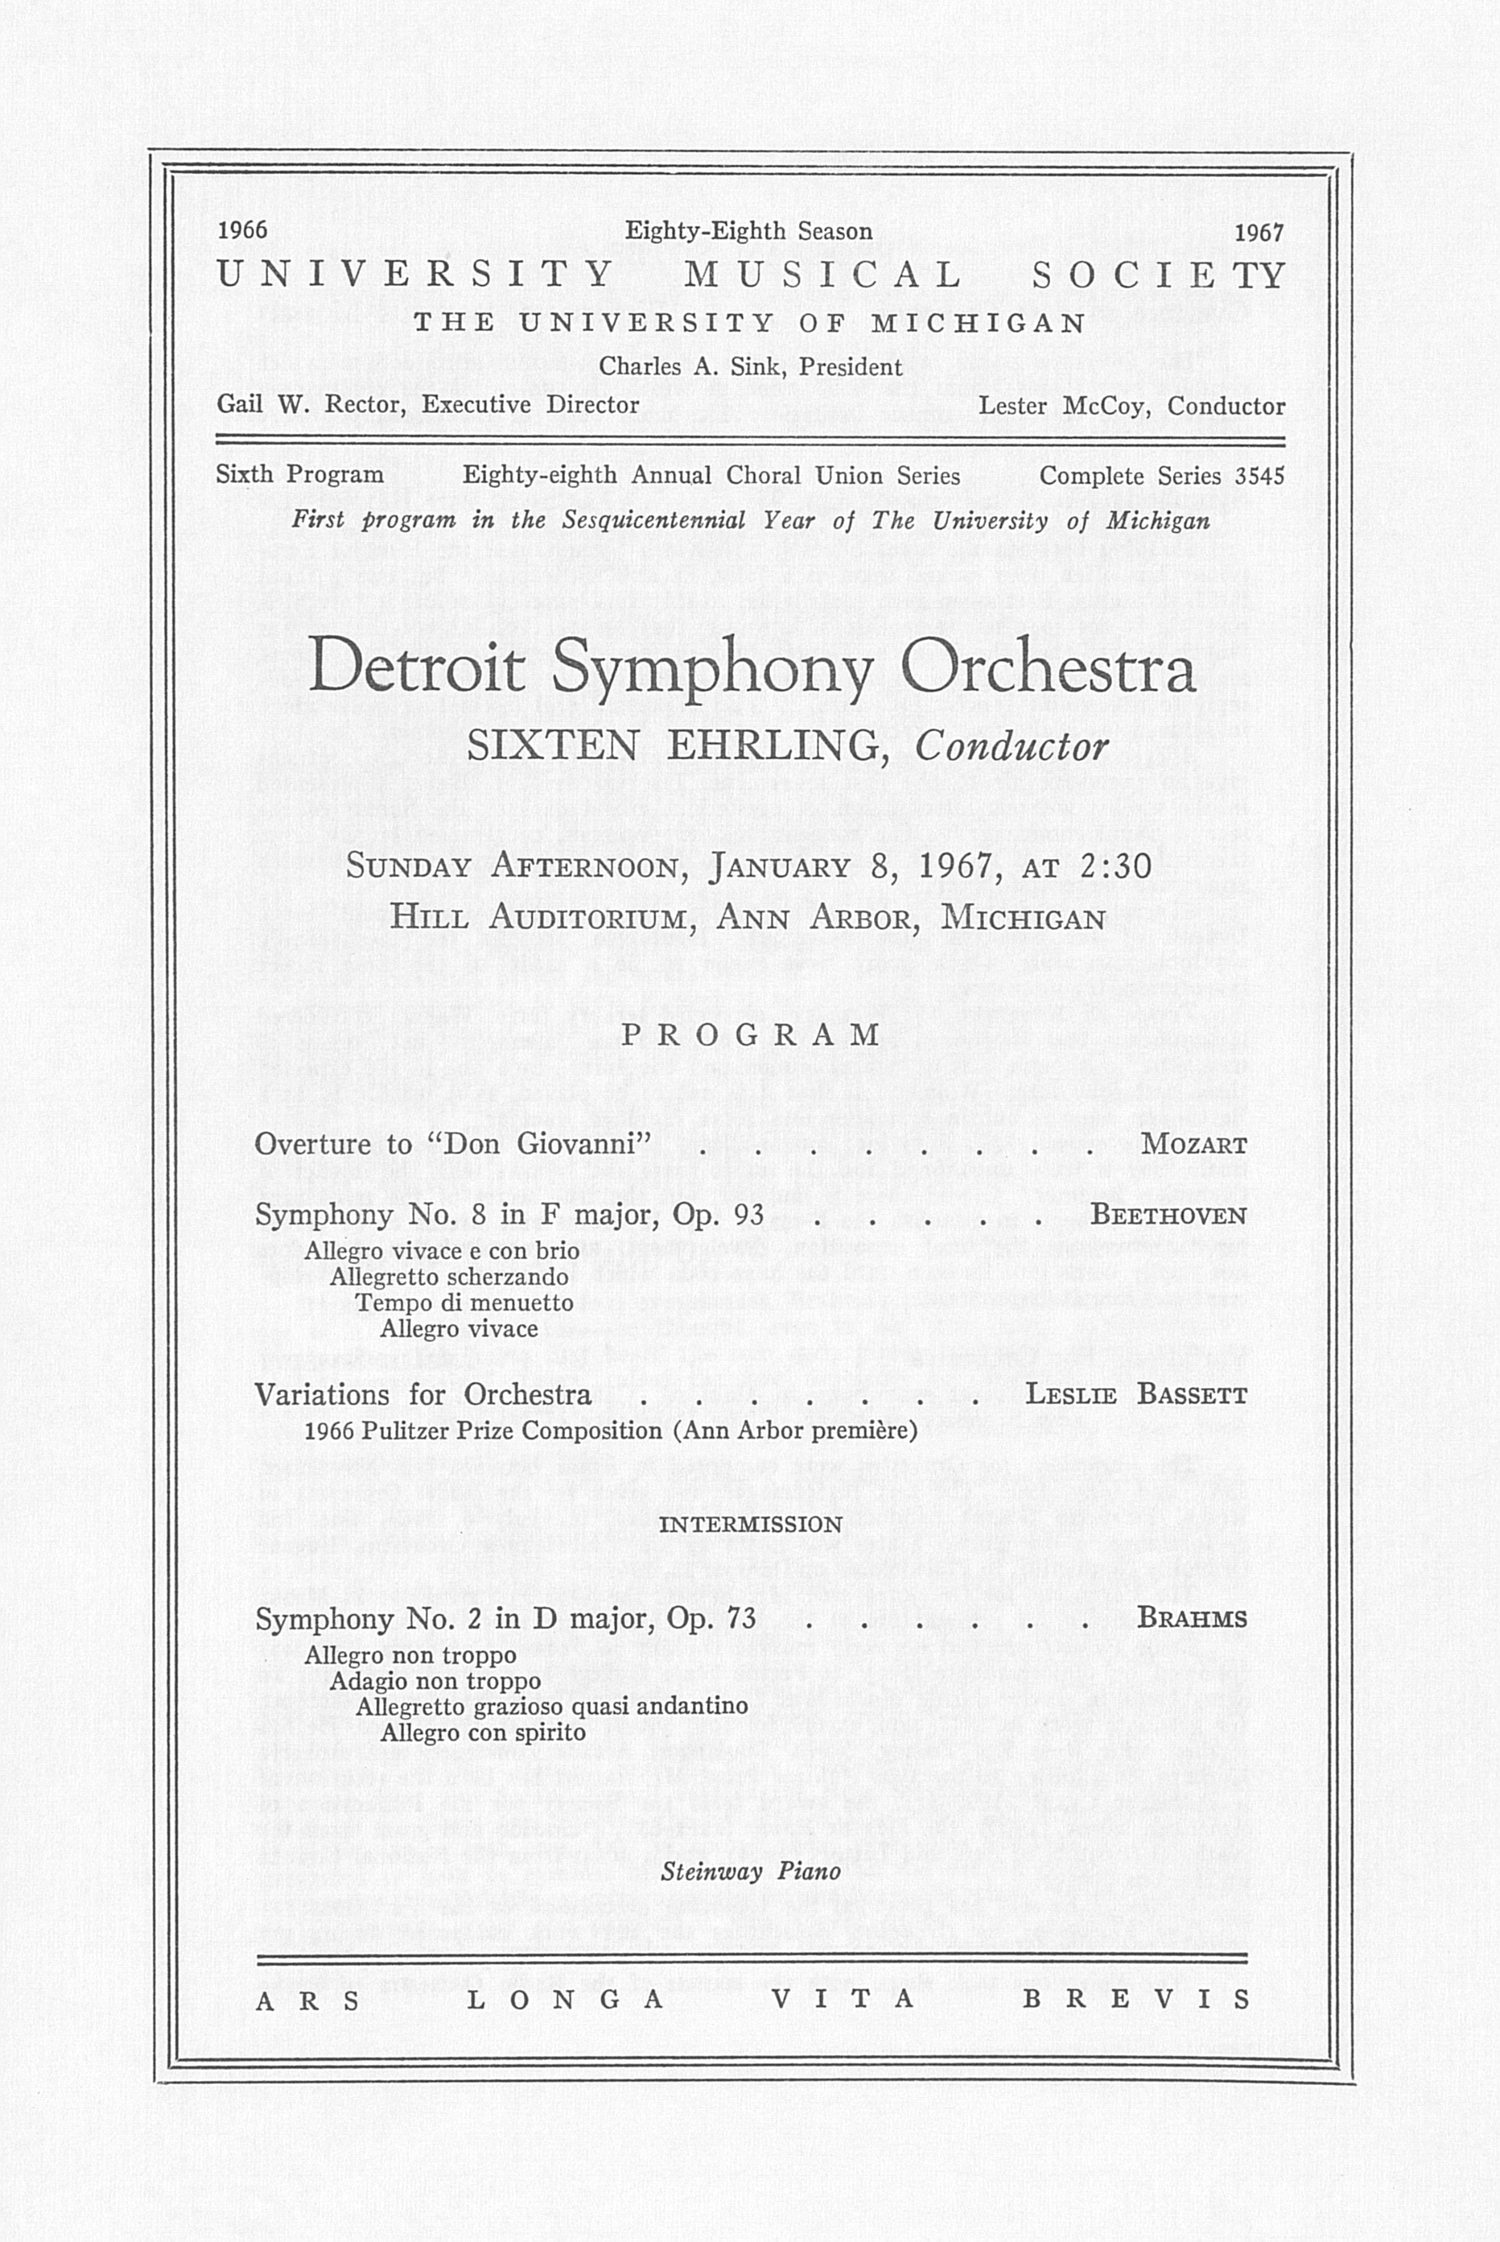 UMS Concert Program, January 8, 1967: Detroit Symphony Orchestra --  image